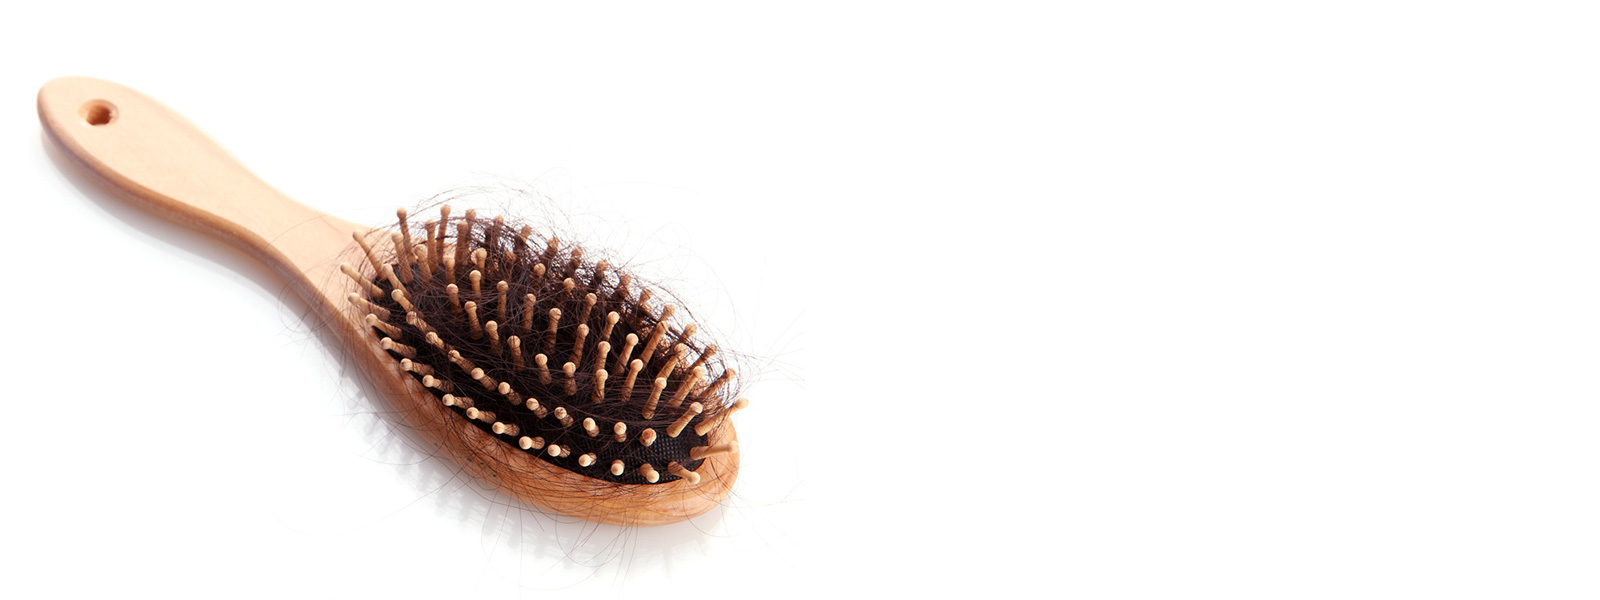 bundle of hair on a hairbrush